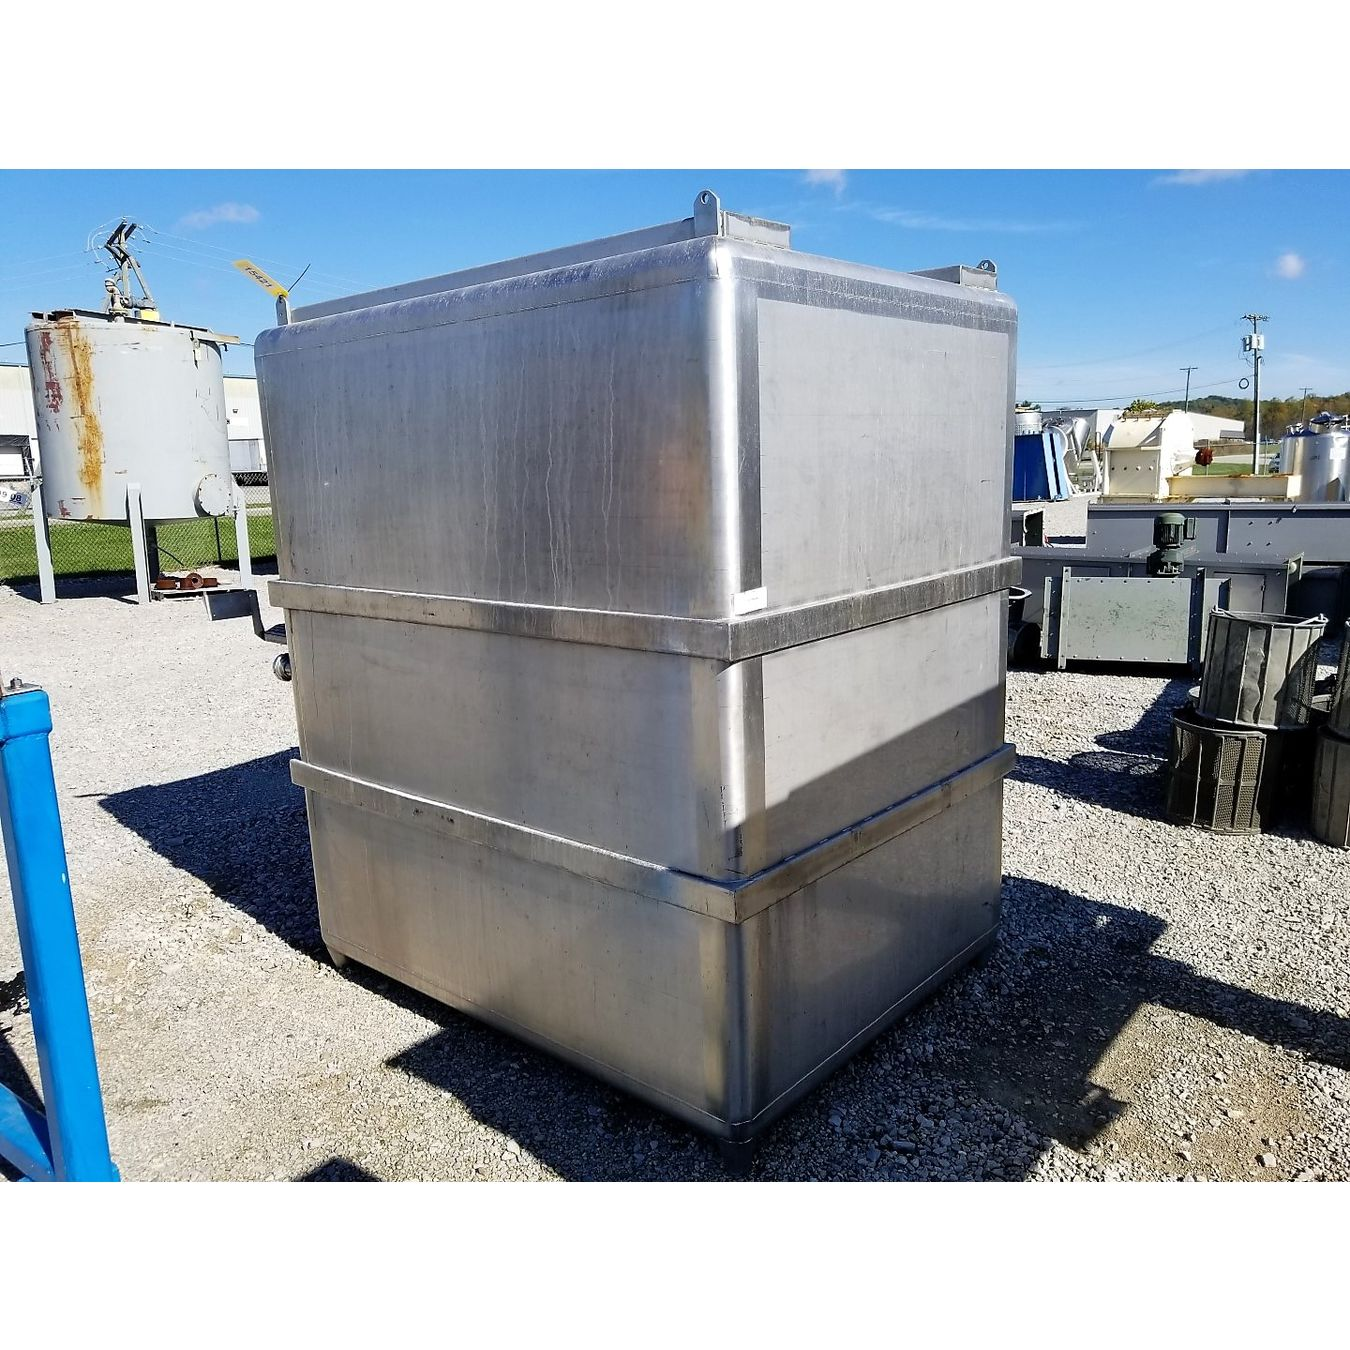 Used Water Tanks For Sale >> Used 1 260 Gallon Stainless Steel Tank For Sale Buy And Sell